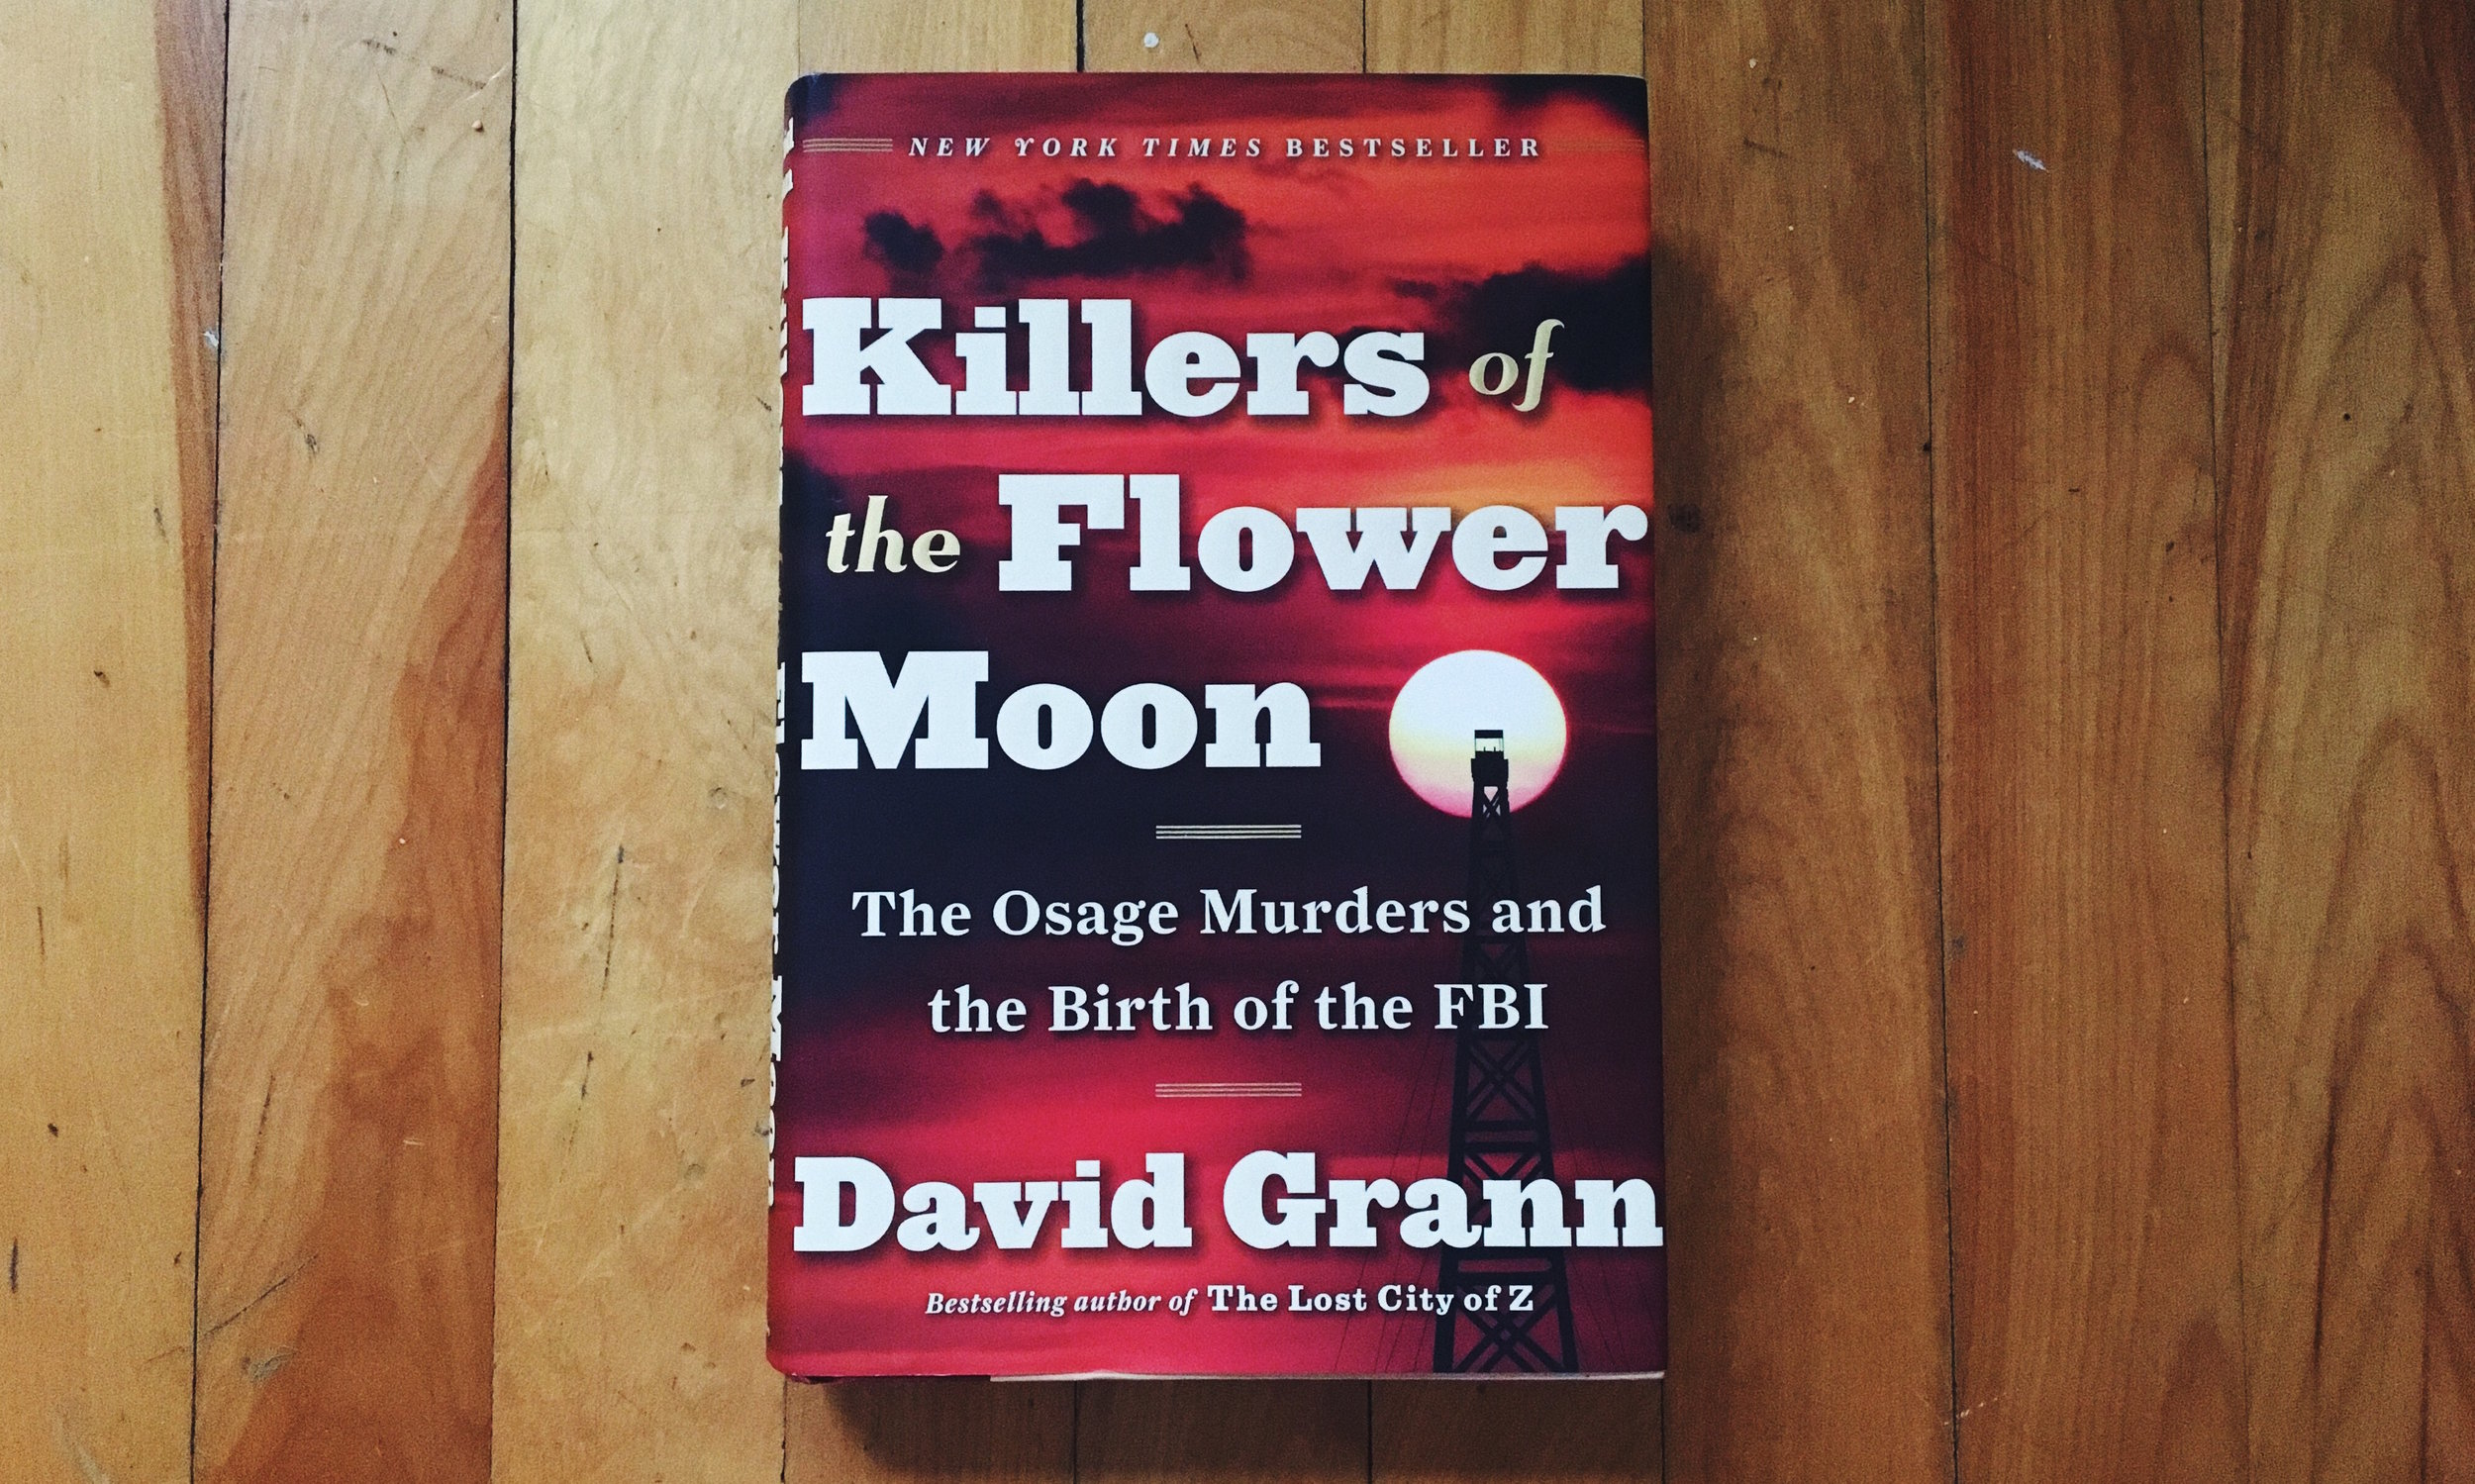 Killers of the Flower Moon - By David Grann